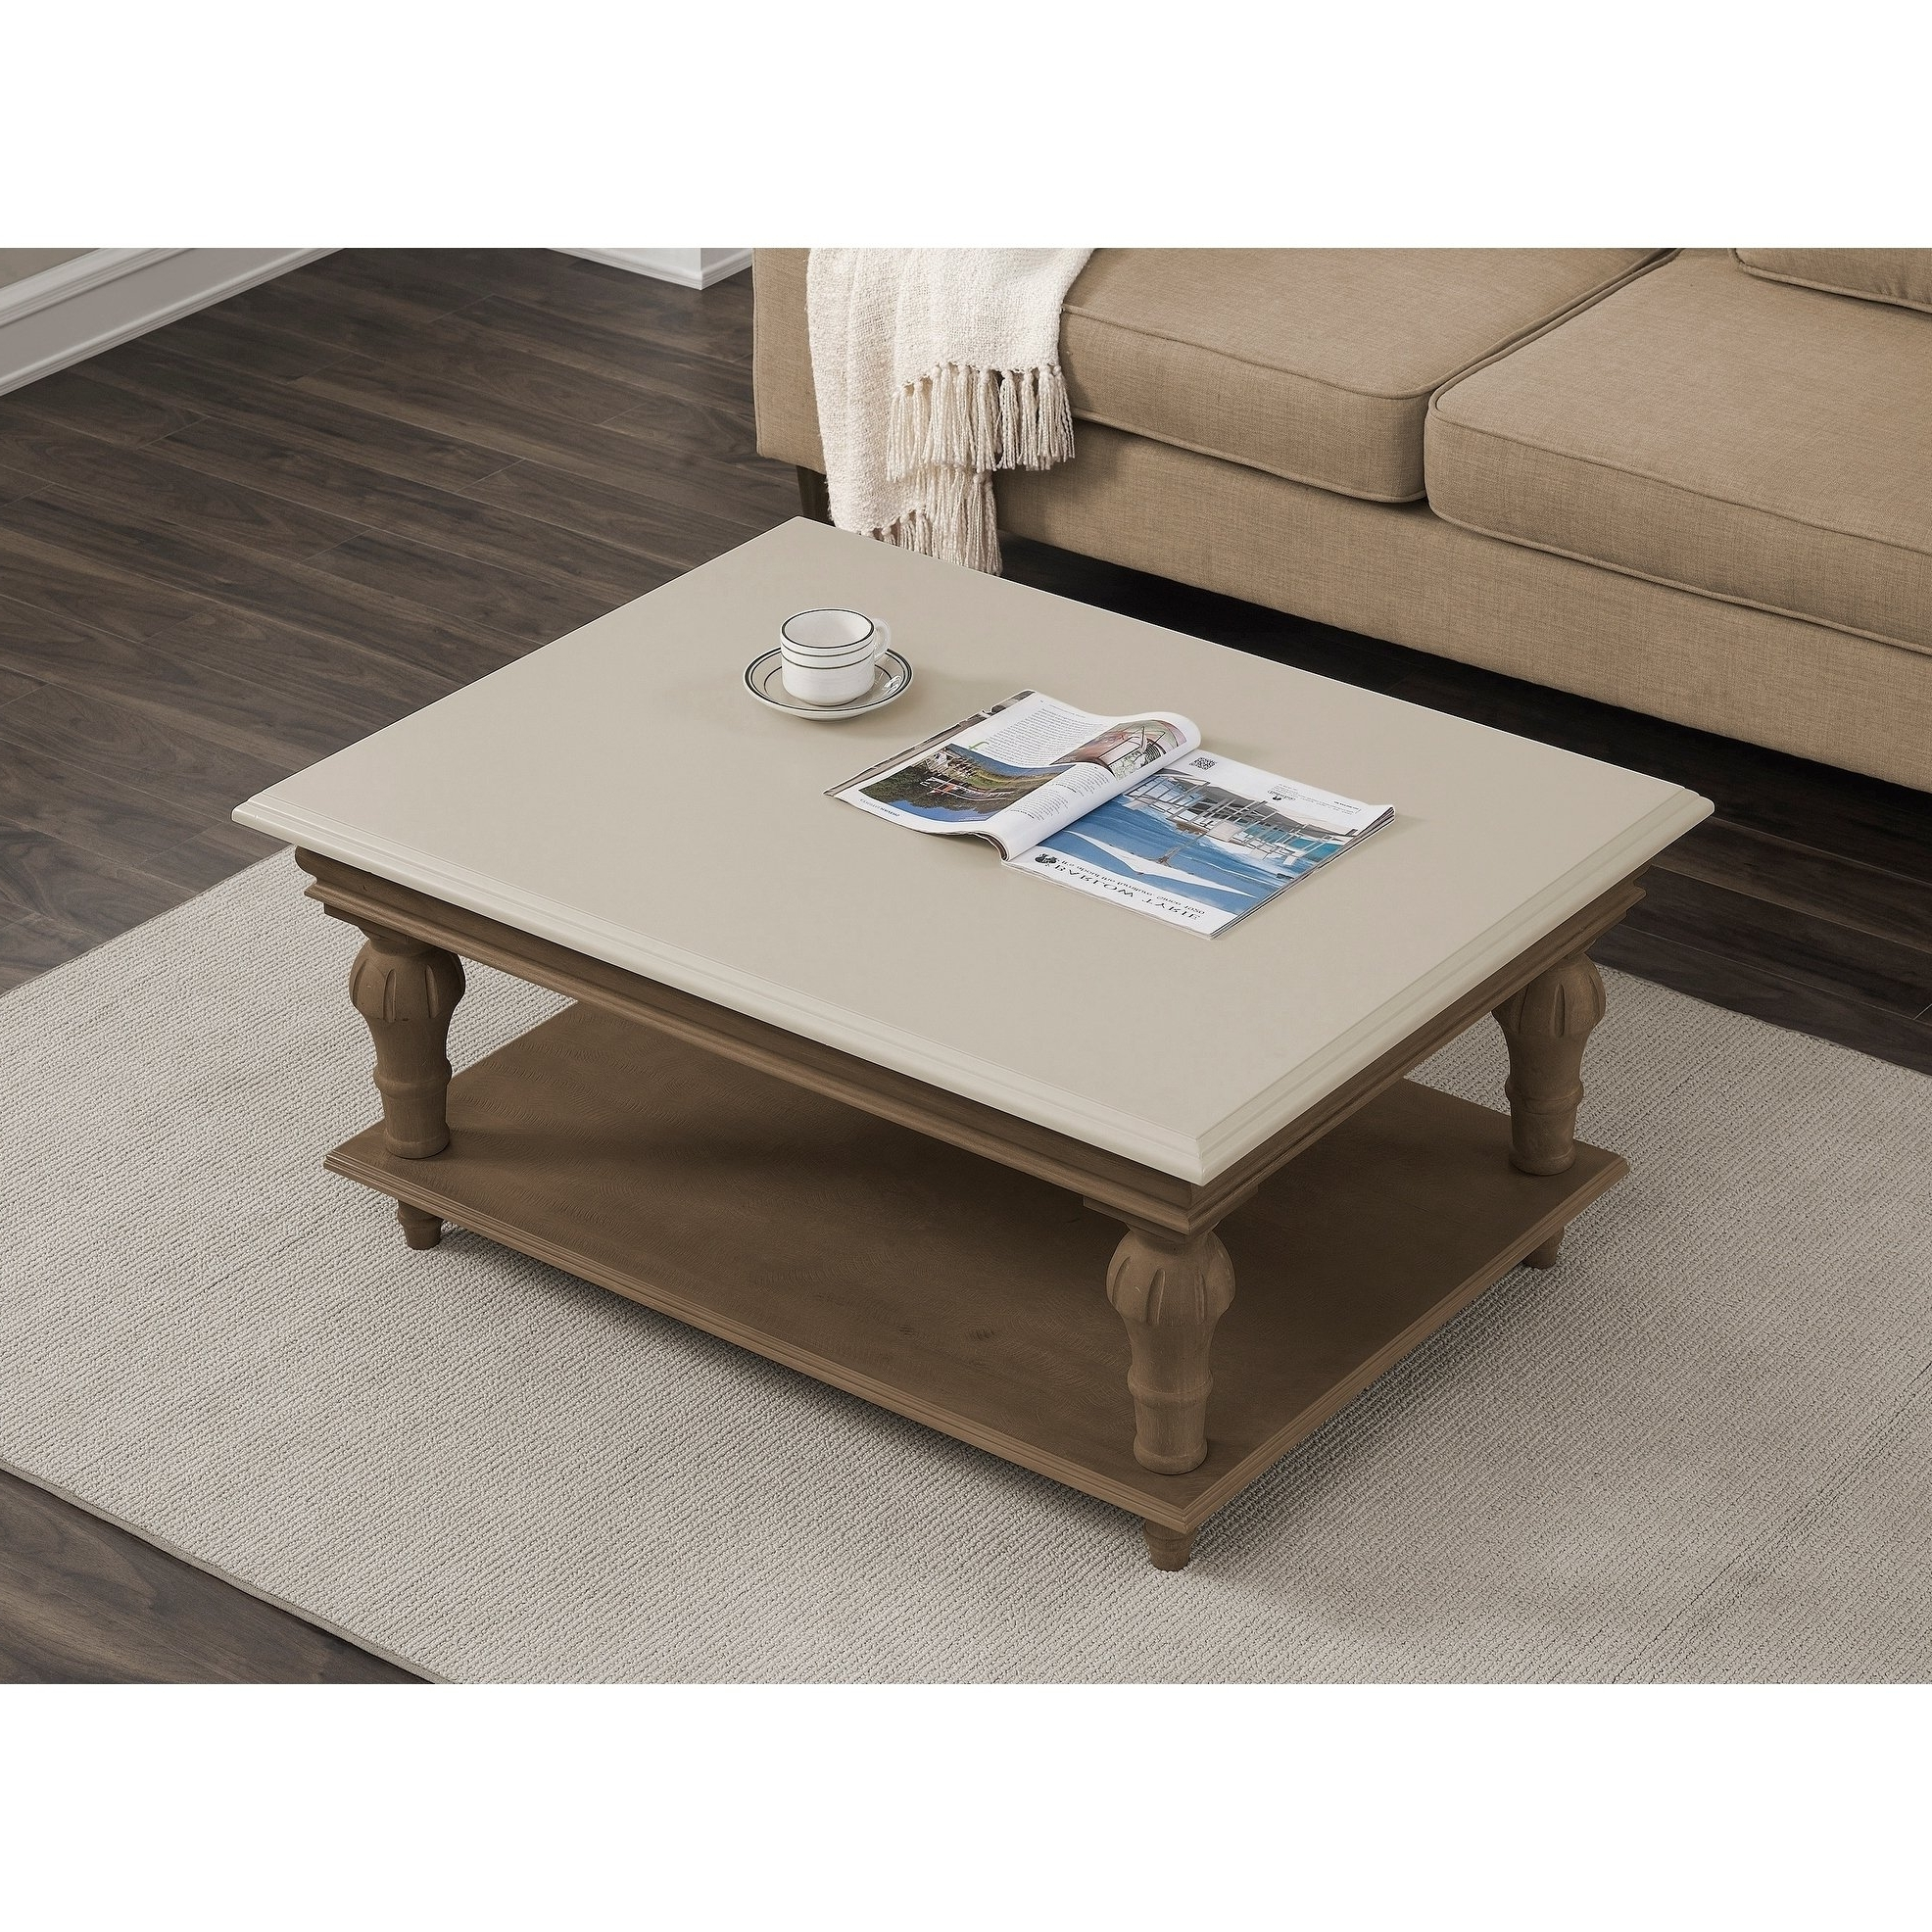 Shop Elements Cream Wood Coffee Table – Free Shipping Today With Regard To Recent Element Ivory Rectangular Coffee Tables (View 9 of 20)